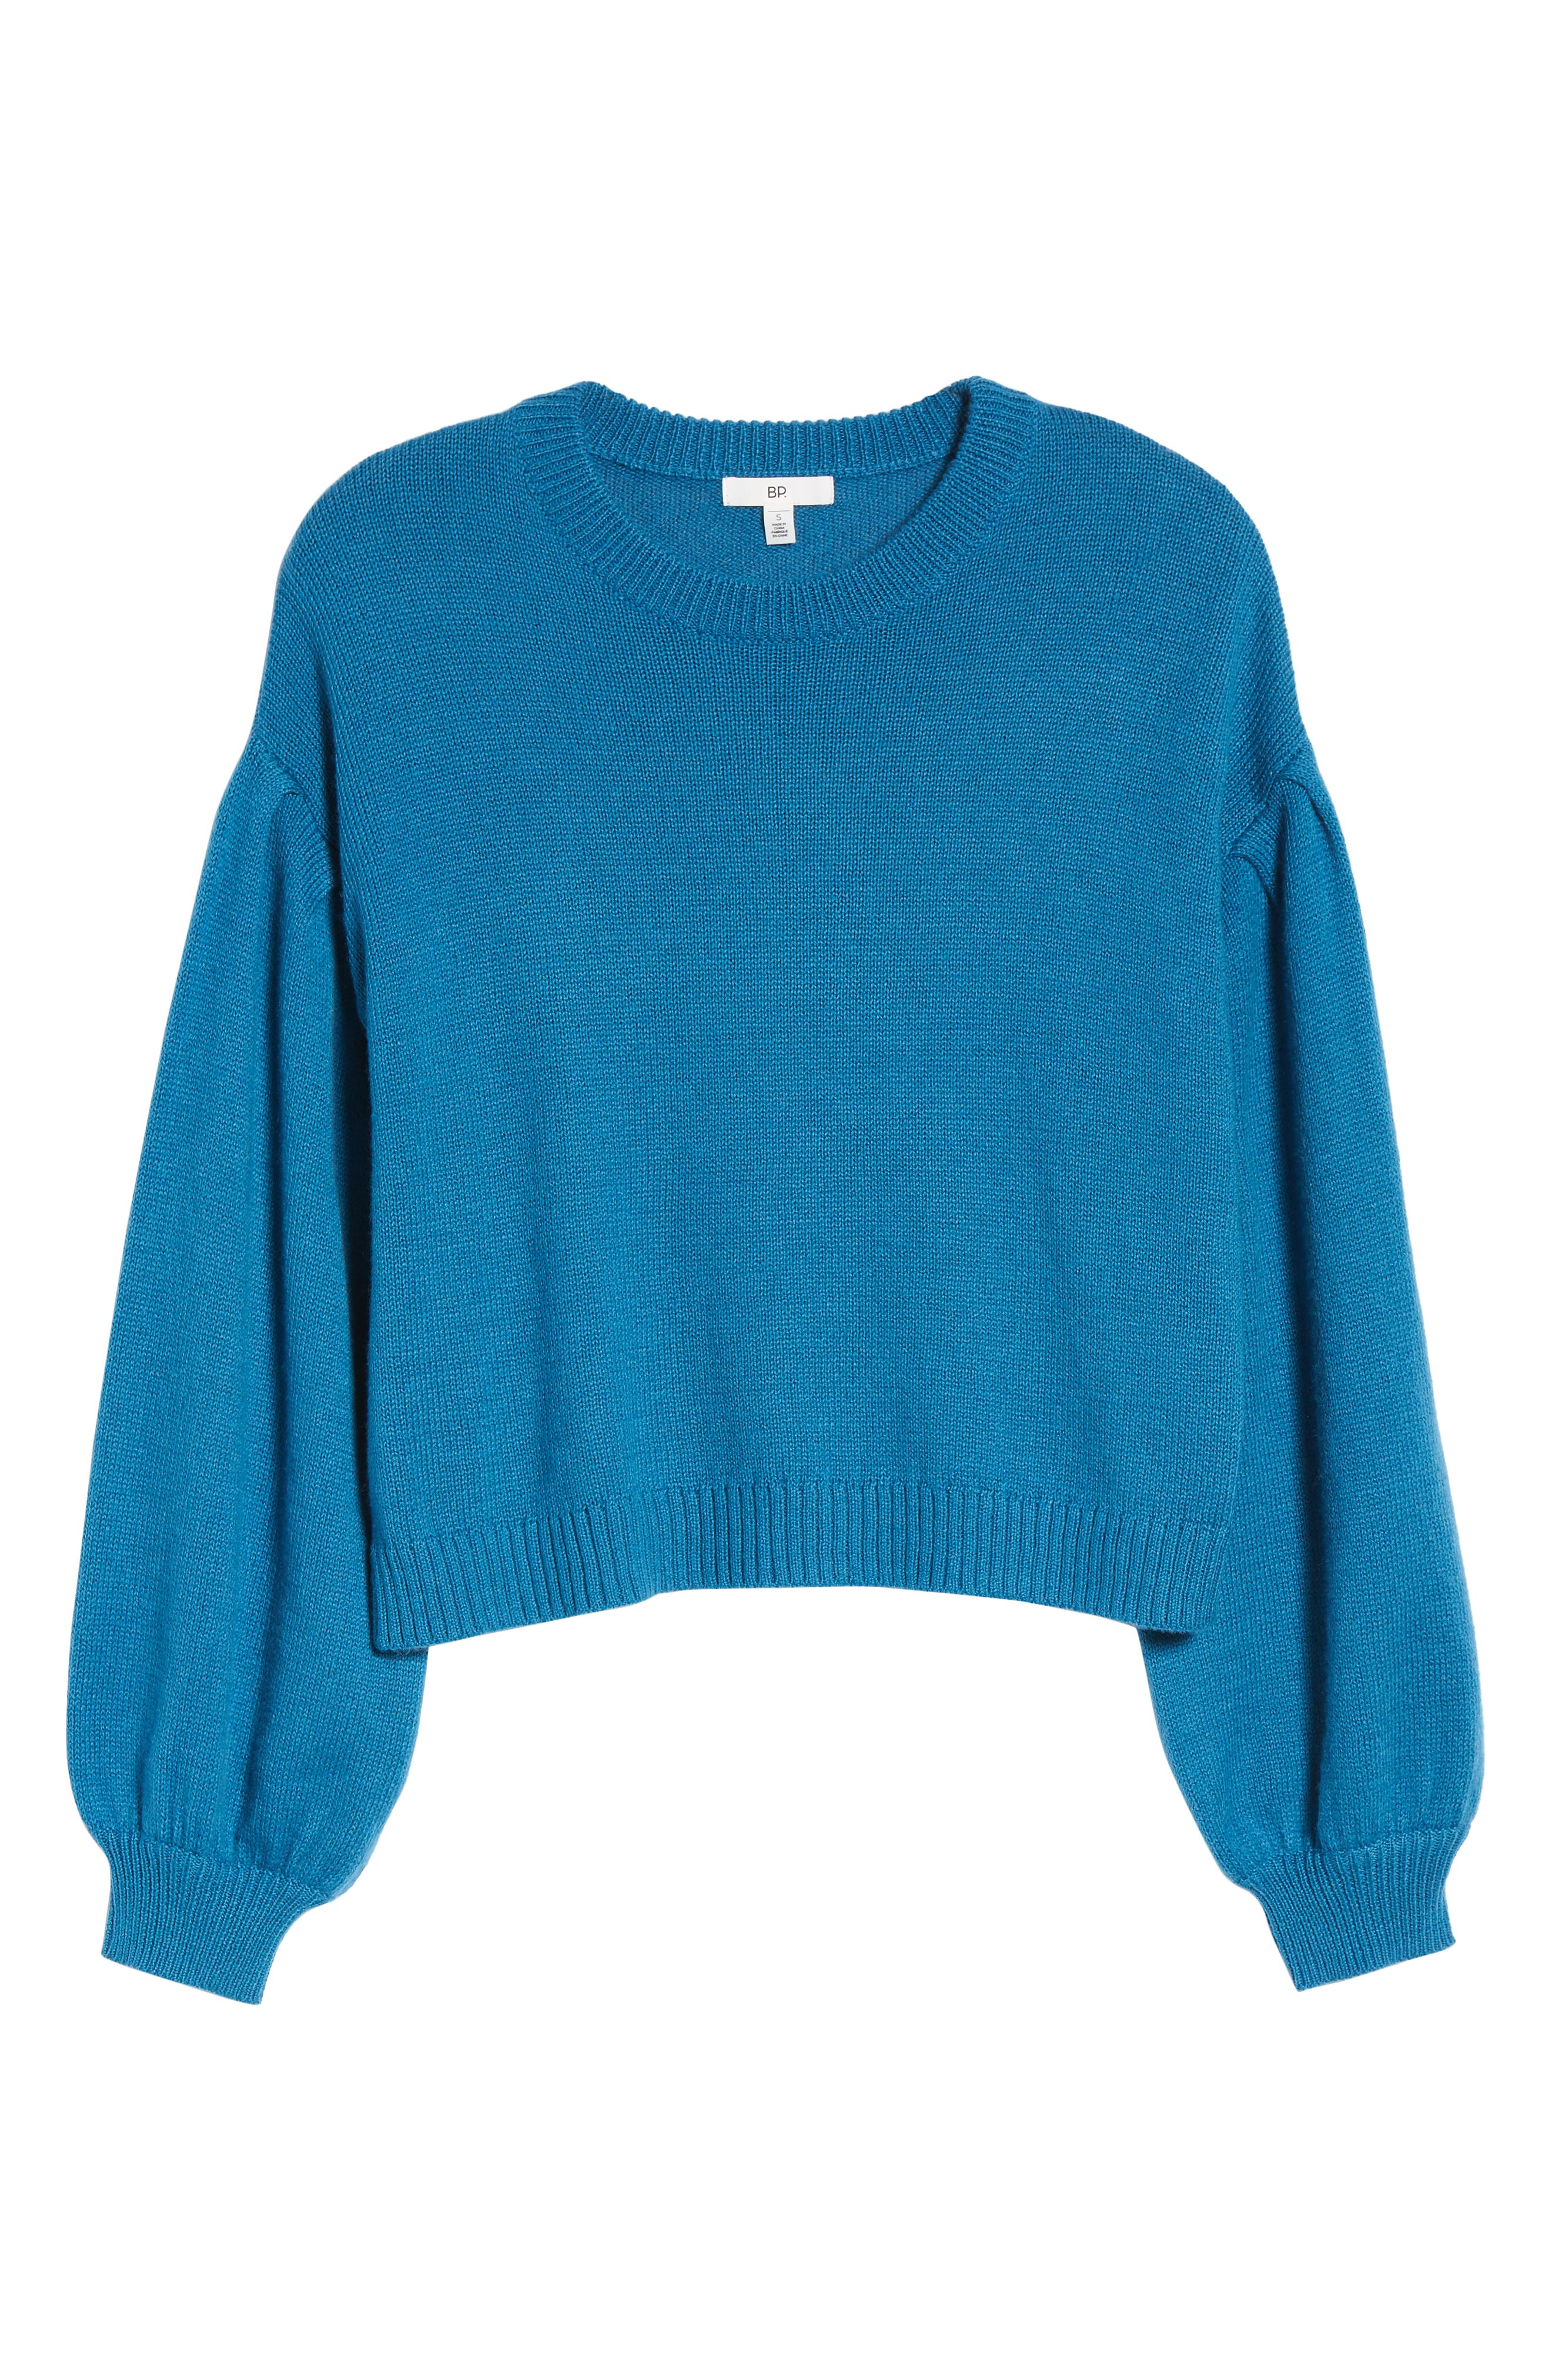 Blouson Sleeve Sweater,                             Alternate thumbnail 6, color,                             449